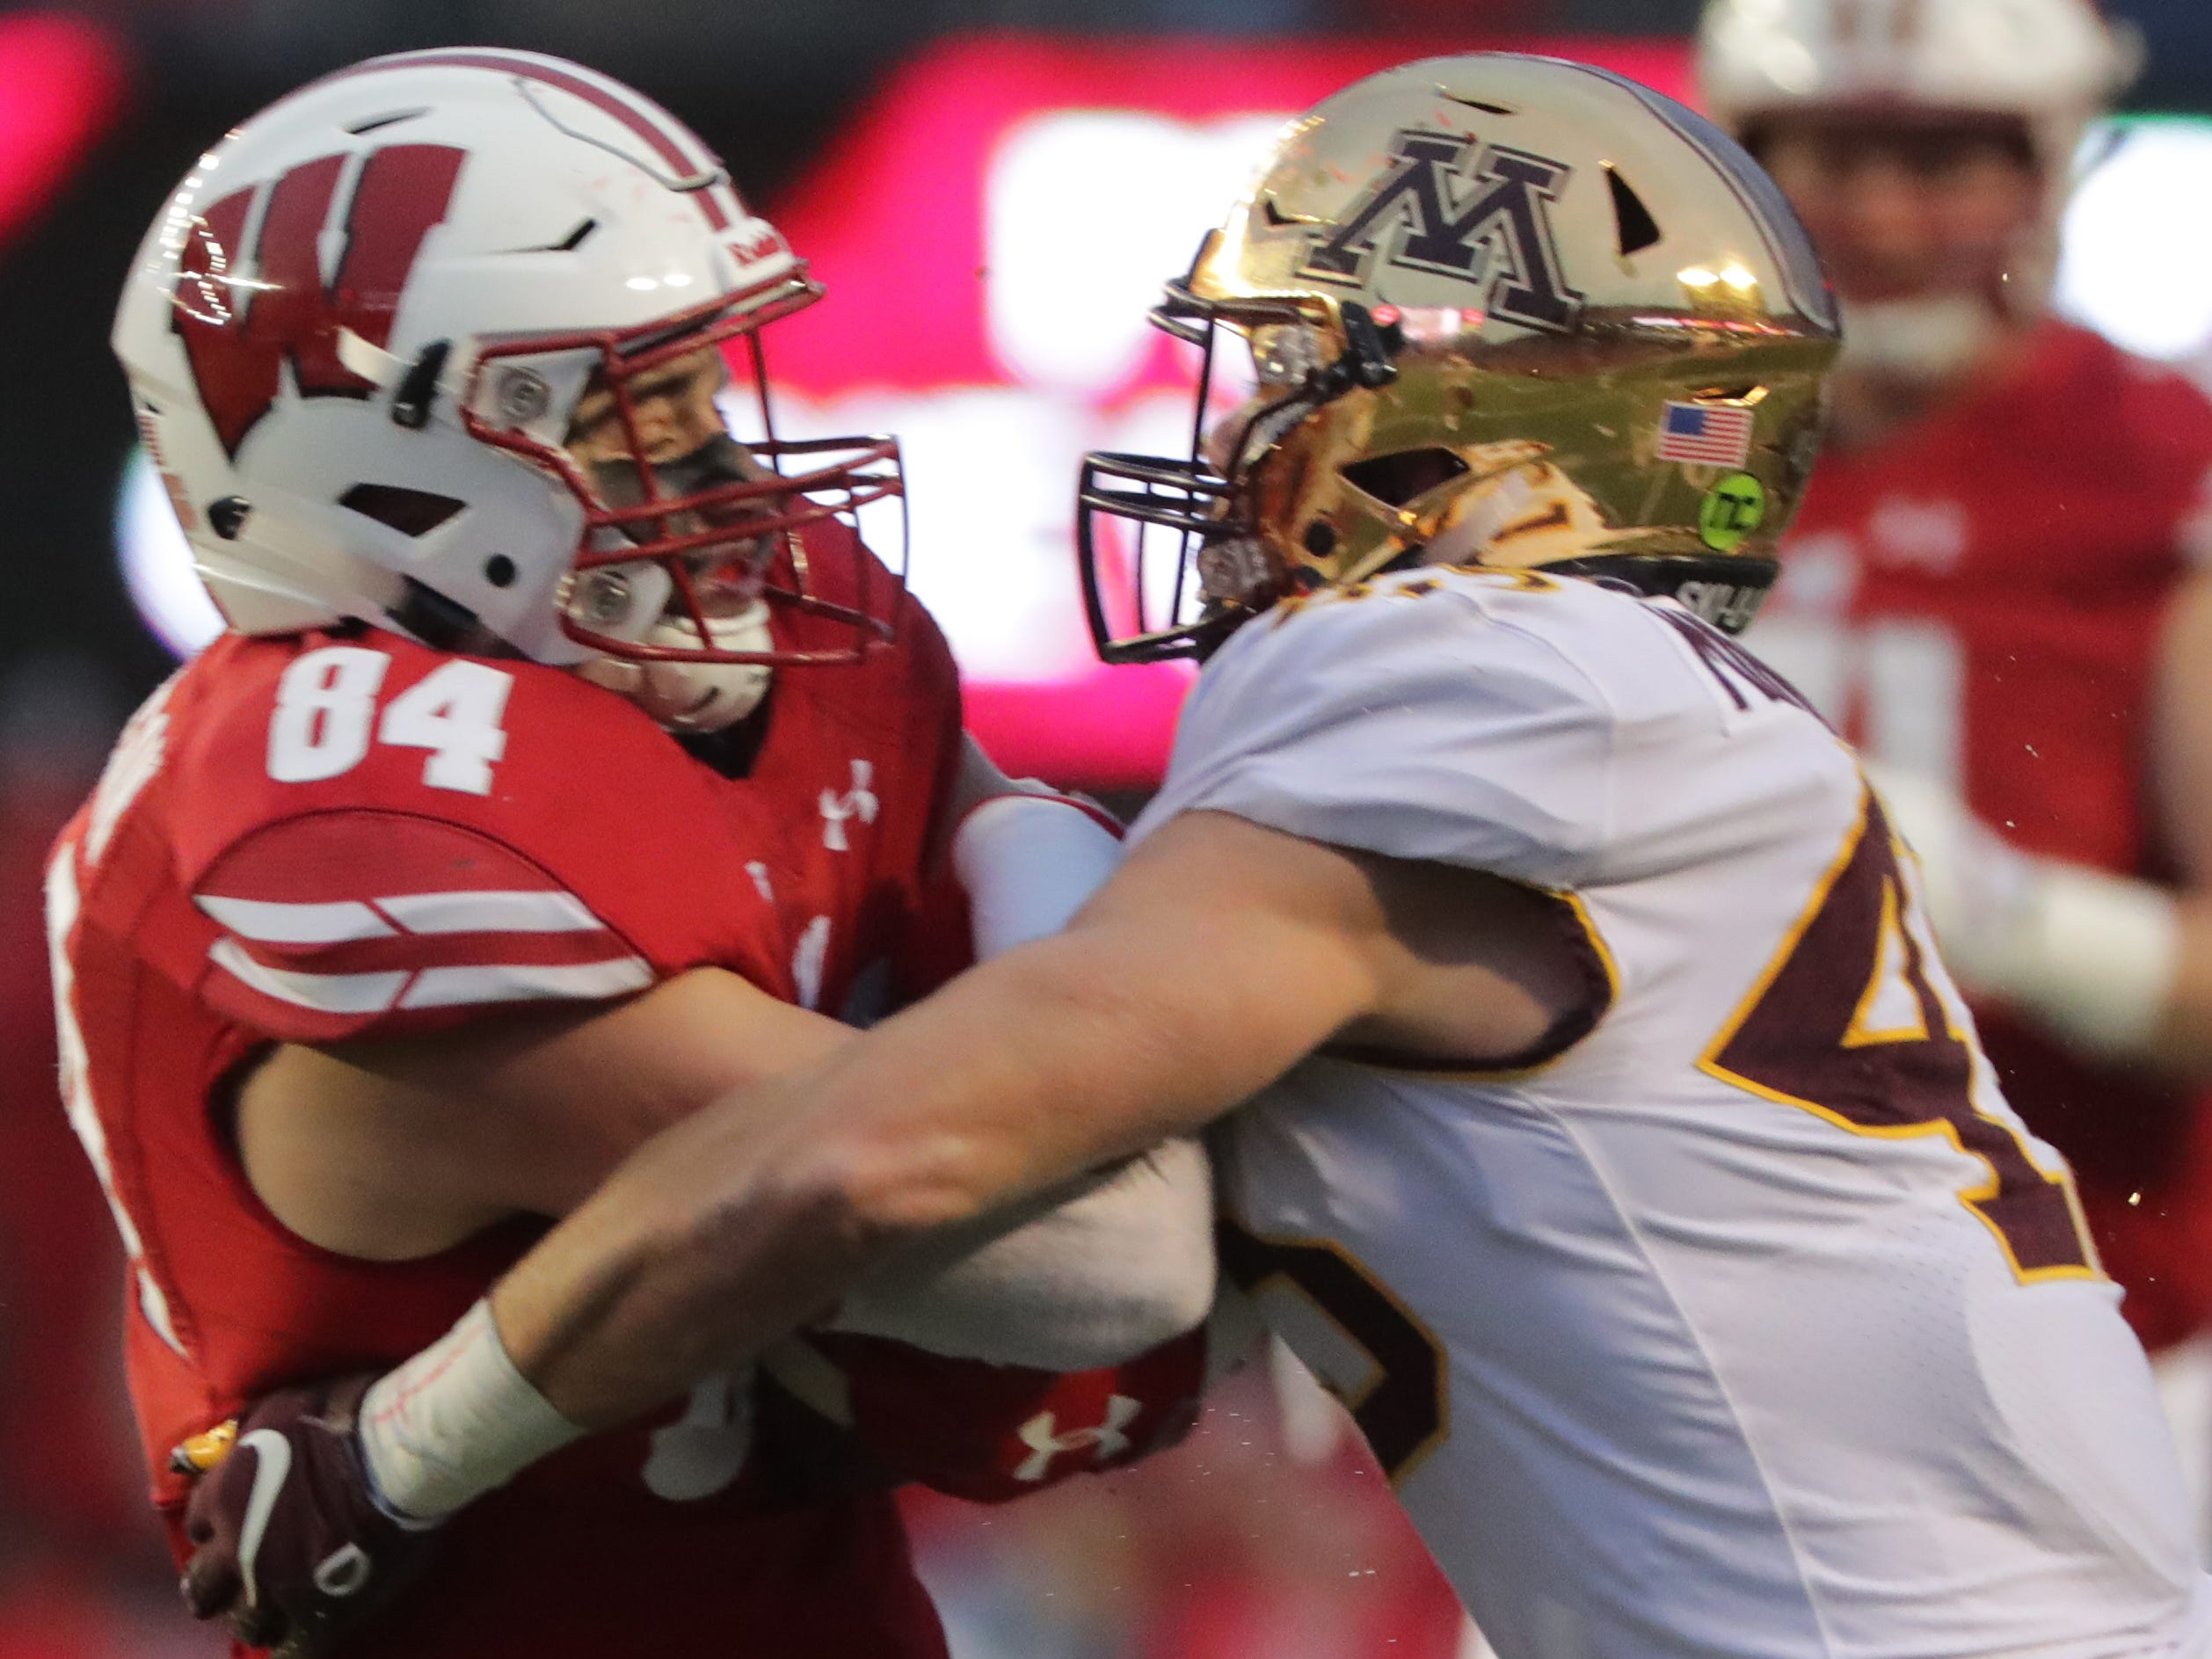 Wisconsin tight end Jake Ferguson is able to hang onto a reception that produced a first down despite a big hit from Minnesota linebacker Carter Coughlin during the fourth quarter Saturday.